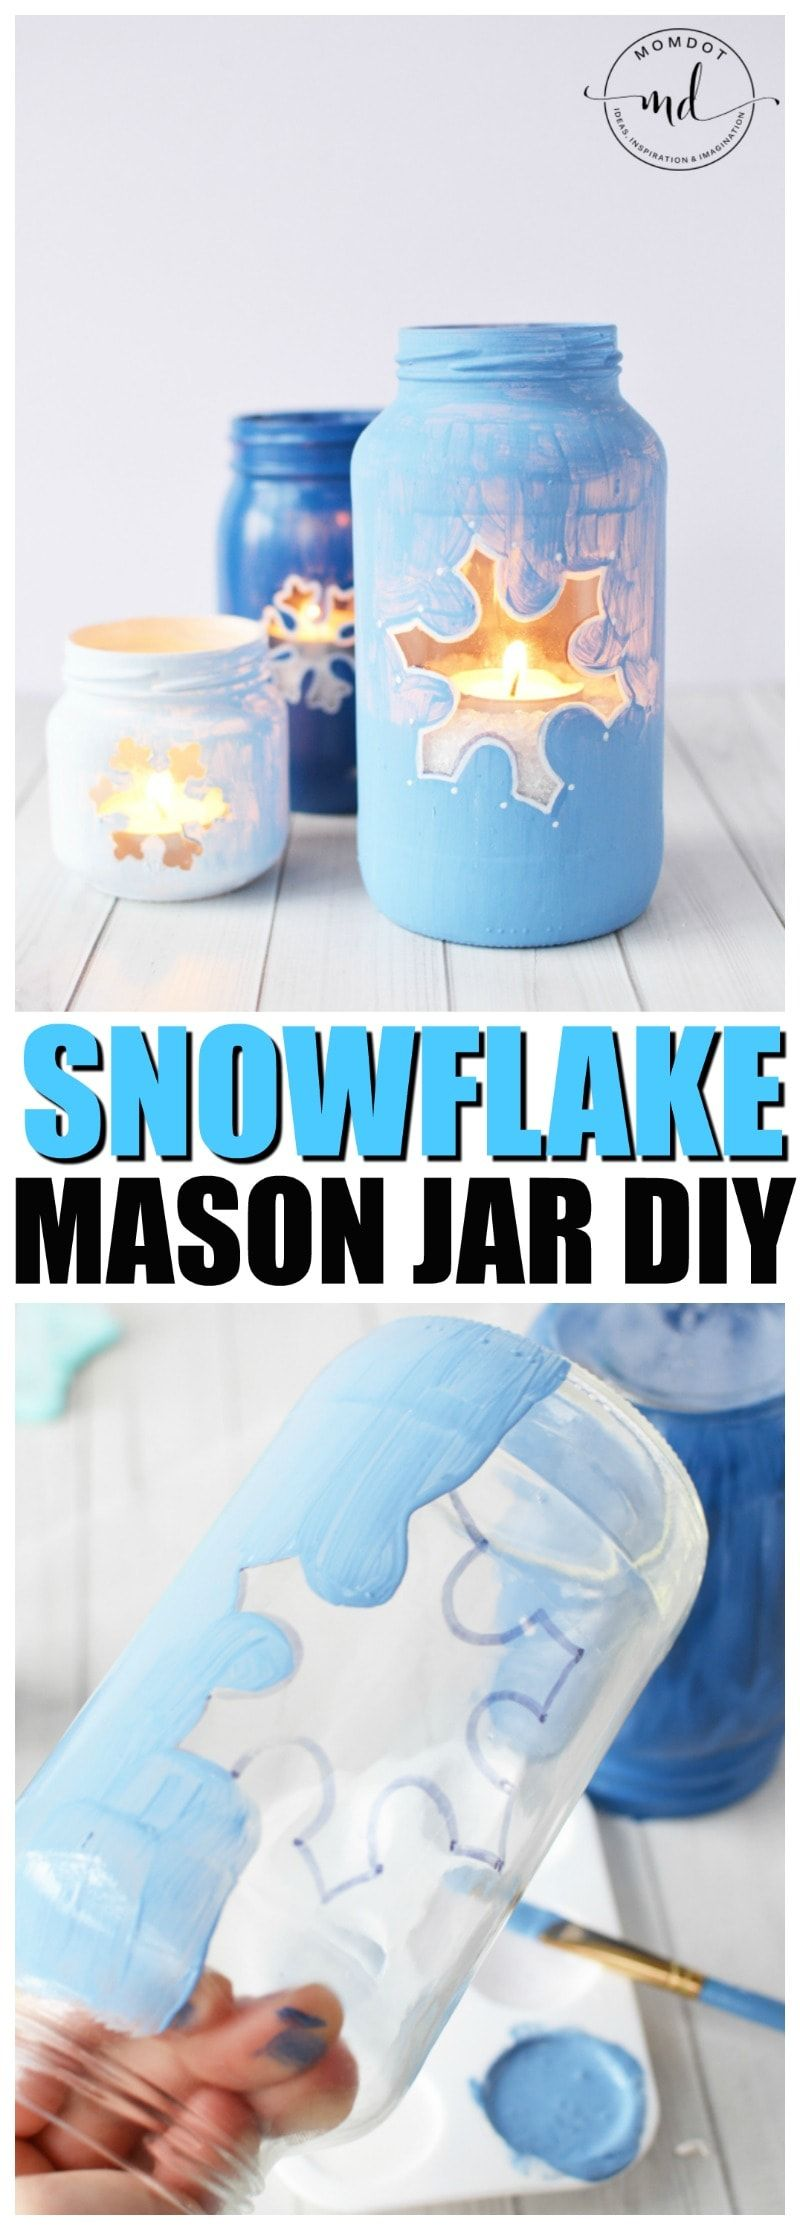 Snowflake Mason Jar Diy Christmas Mason Jar Tutorial Mason Jar